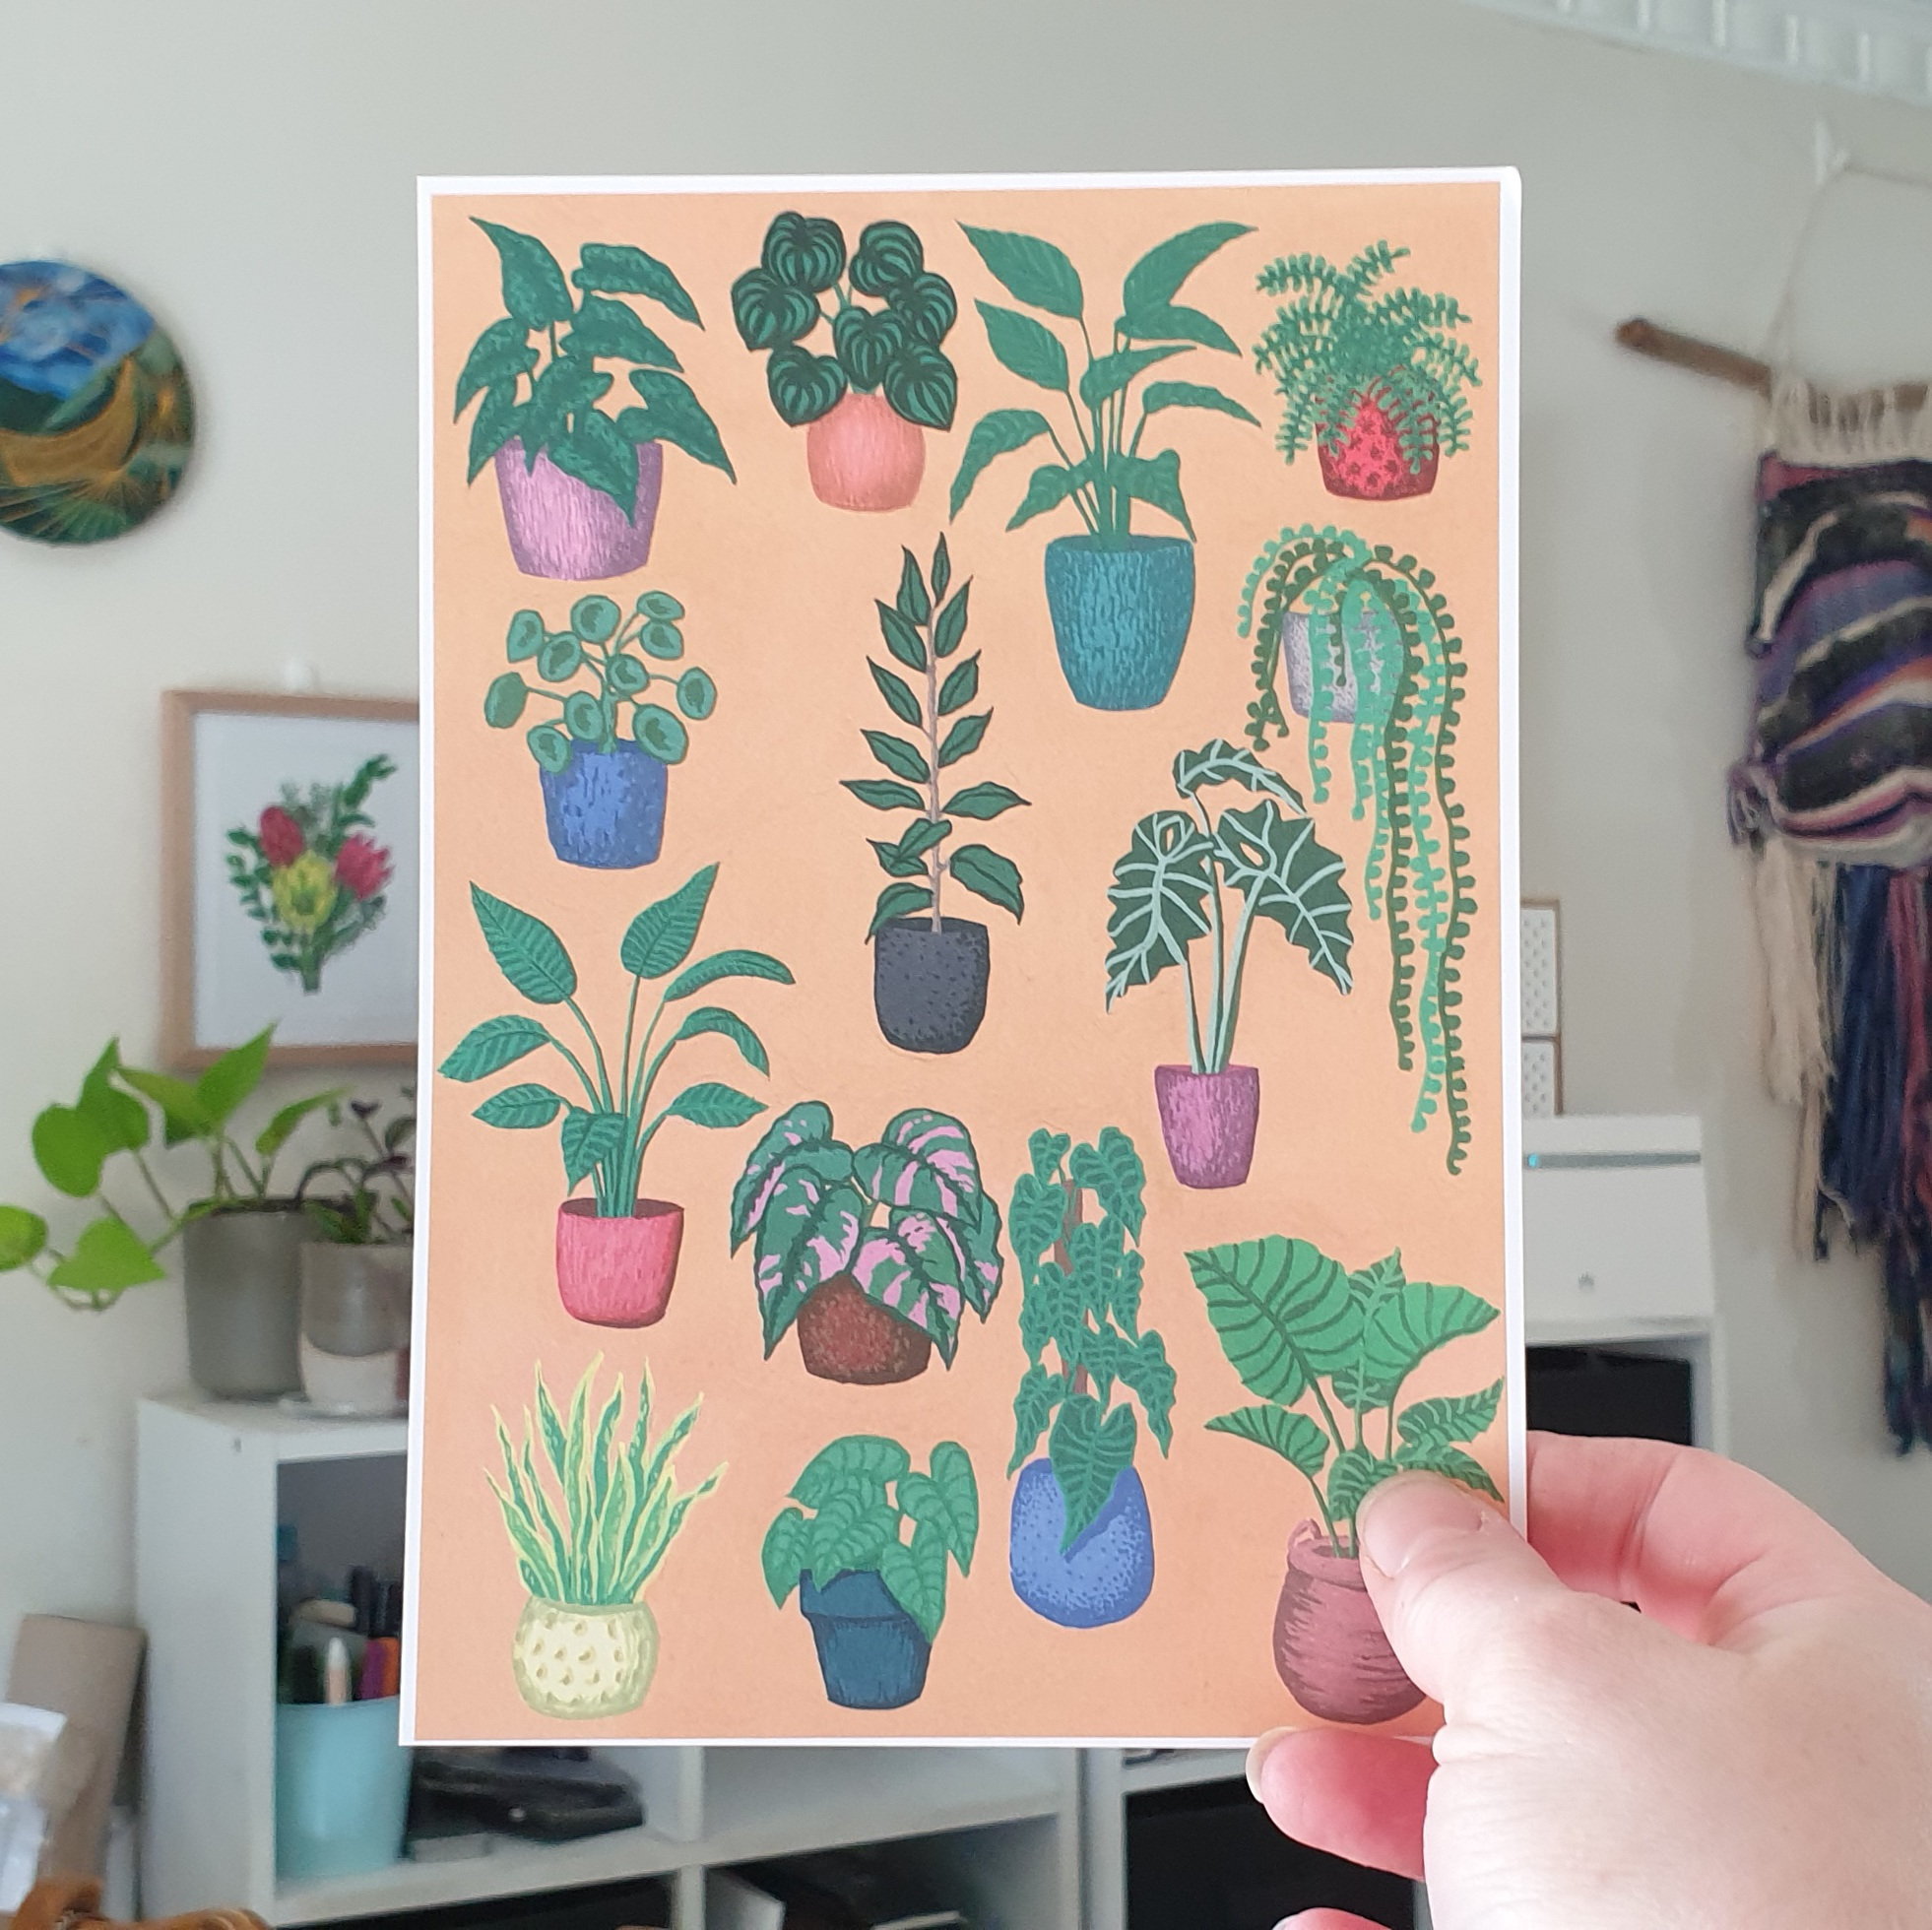 'Variety Potted Plants' A5 Art Print Botanical Collection Sarah Sheldon By A Vibrant Nest